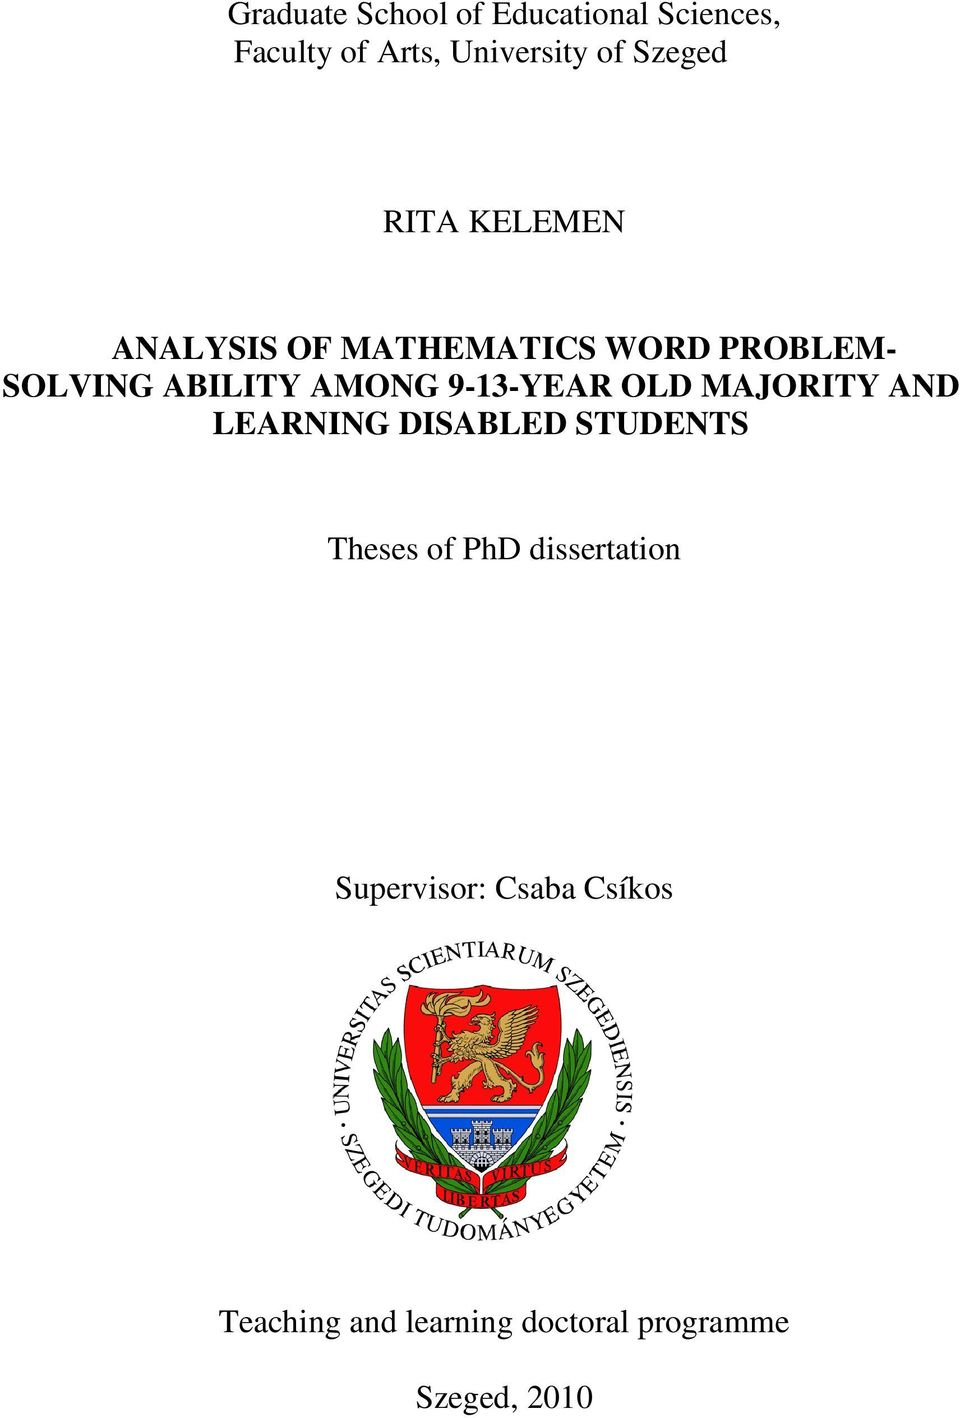 9-13-YEAR OLD MAJORITY AND LEARNING DISABLED STUDENTS Theses of PhD